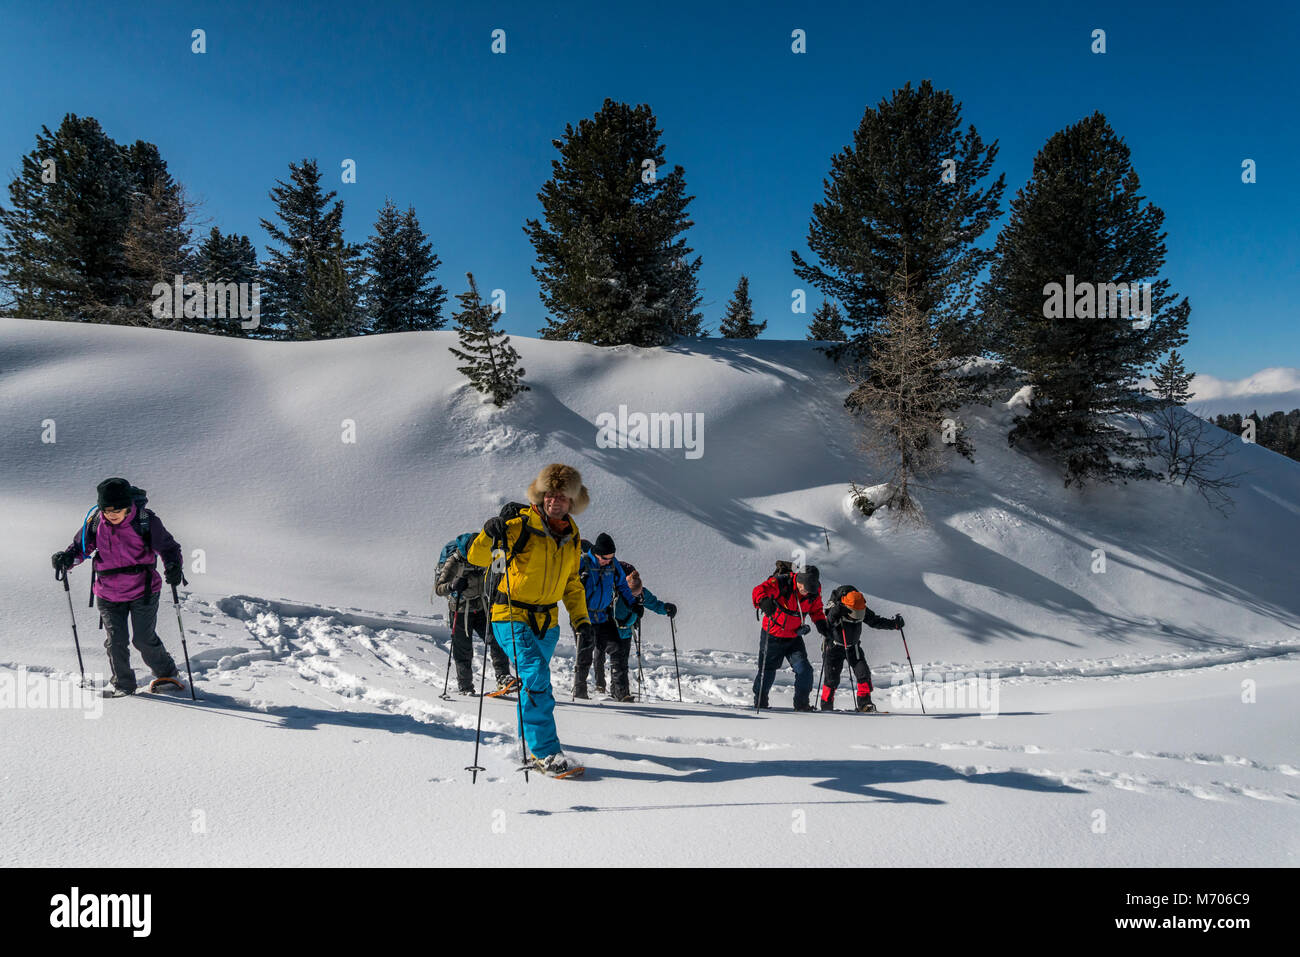 Snow shoe hiking at Kuetai in the Austrian Tirol mountains of the Sellrain Alps - Stock Image